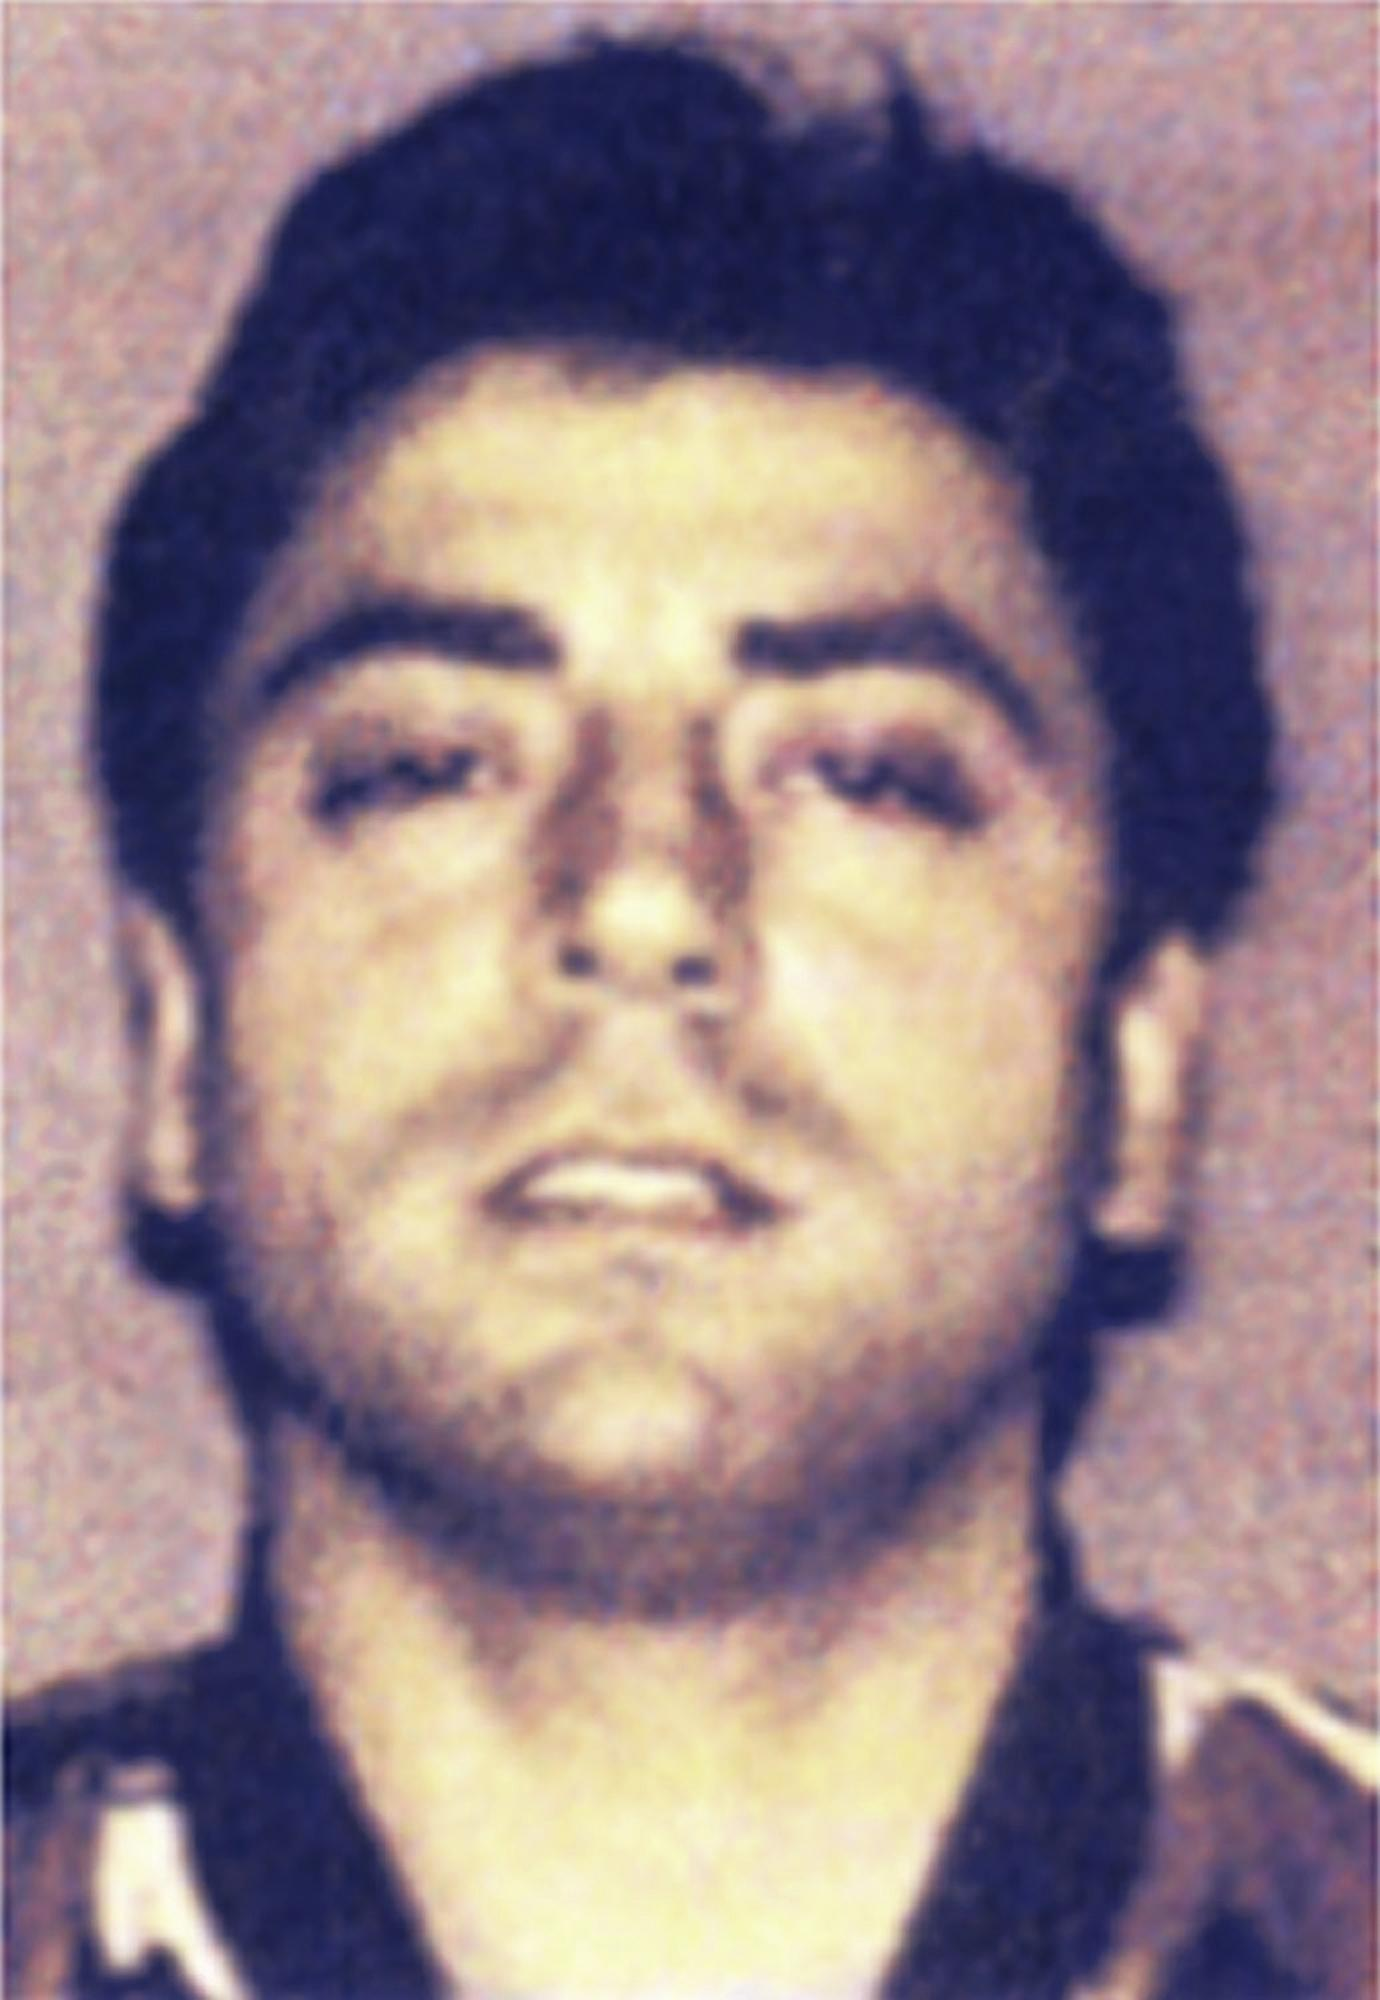 Suspect arrested in mob boss shooting death